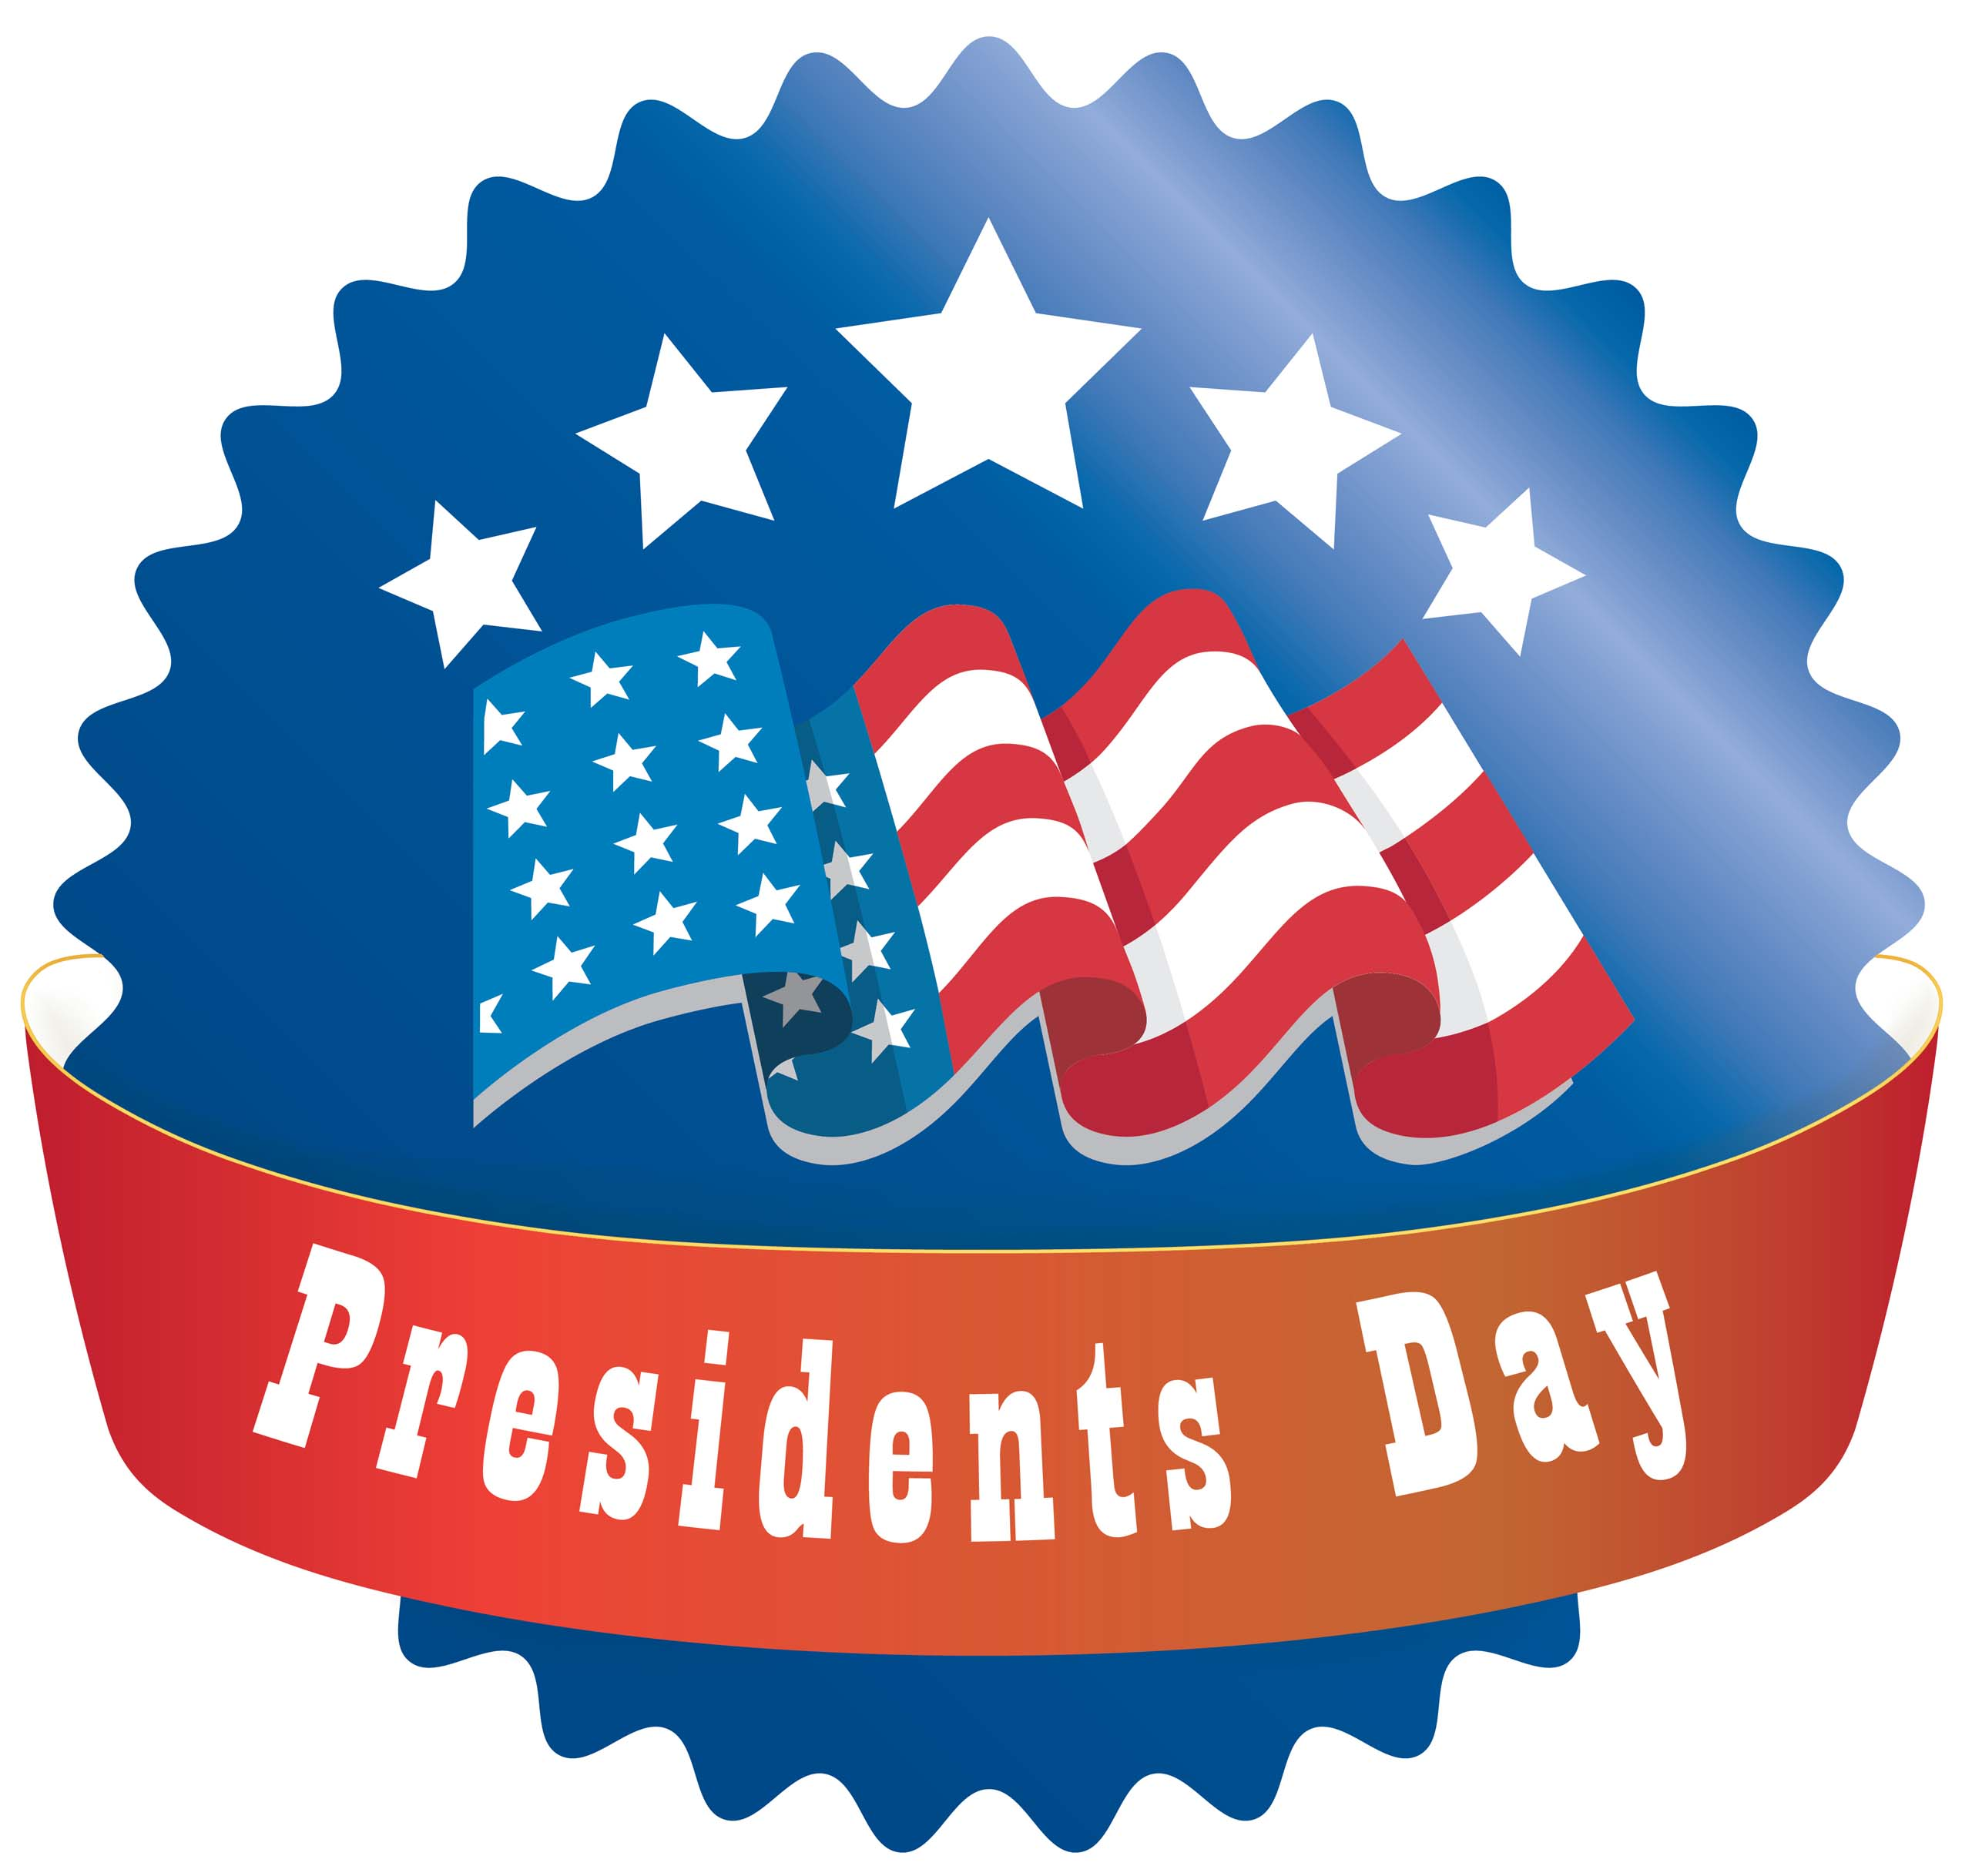 President's Day Wallpapers on 2015 in HD